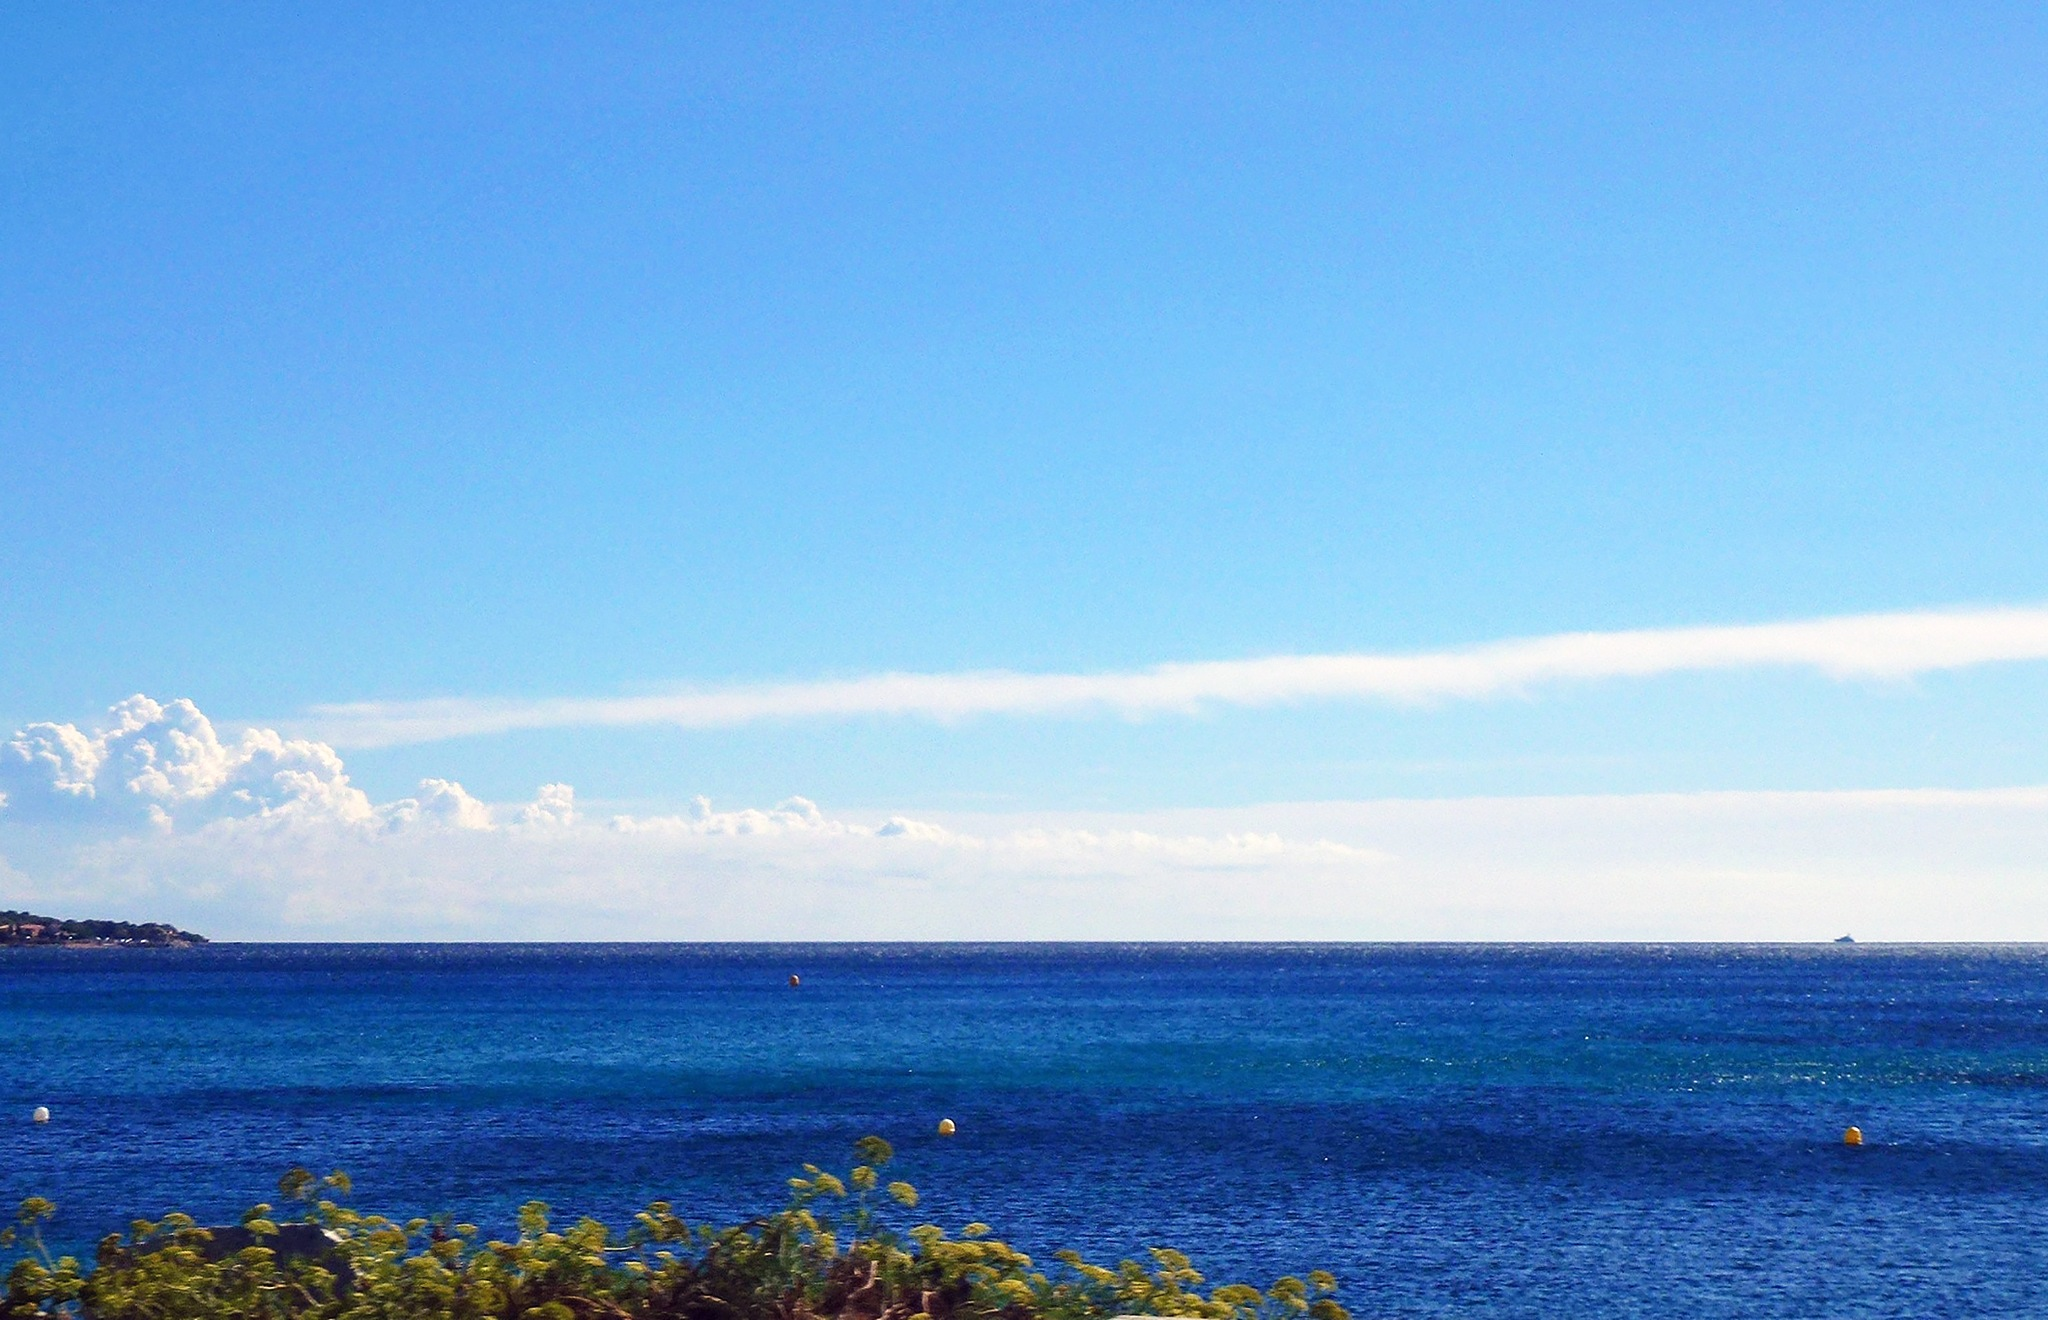 Color of the sea when Mistral wind is blowing by GillesB